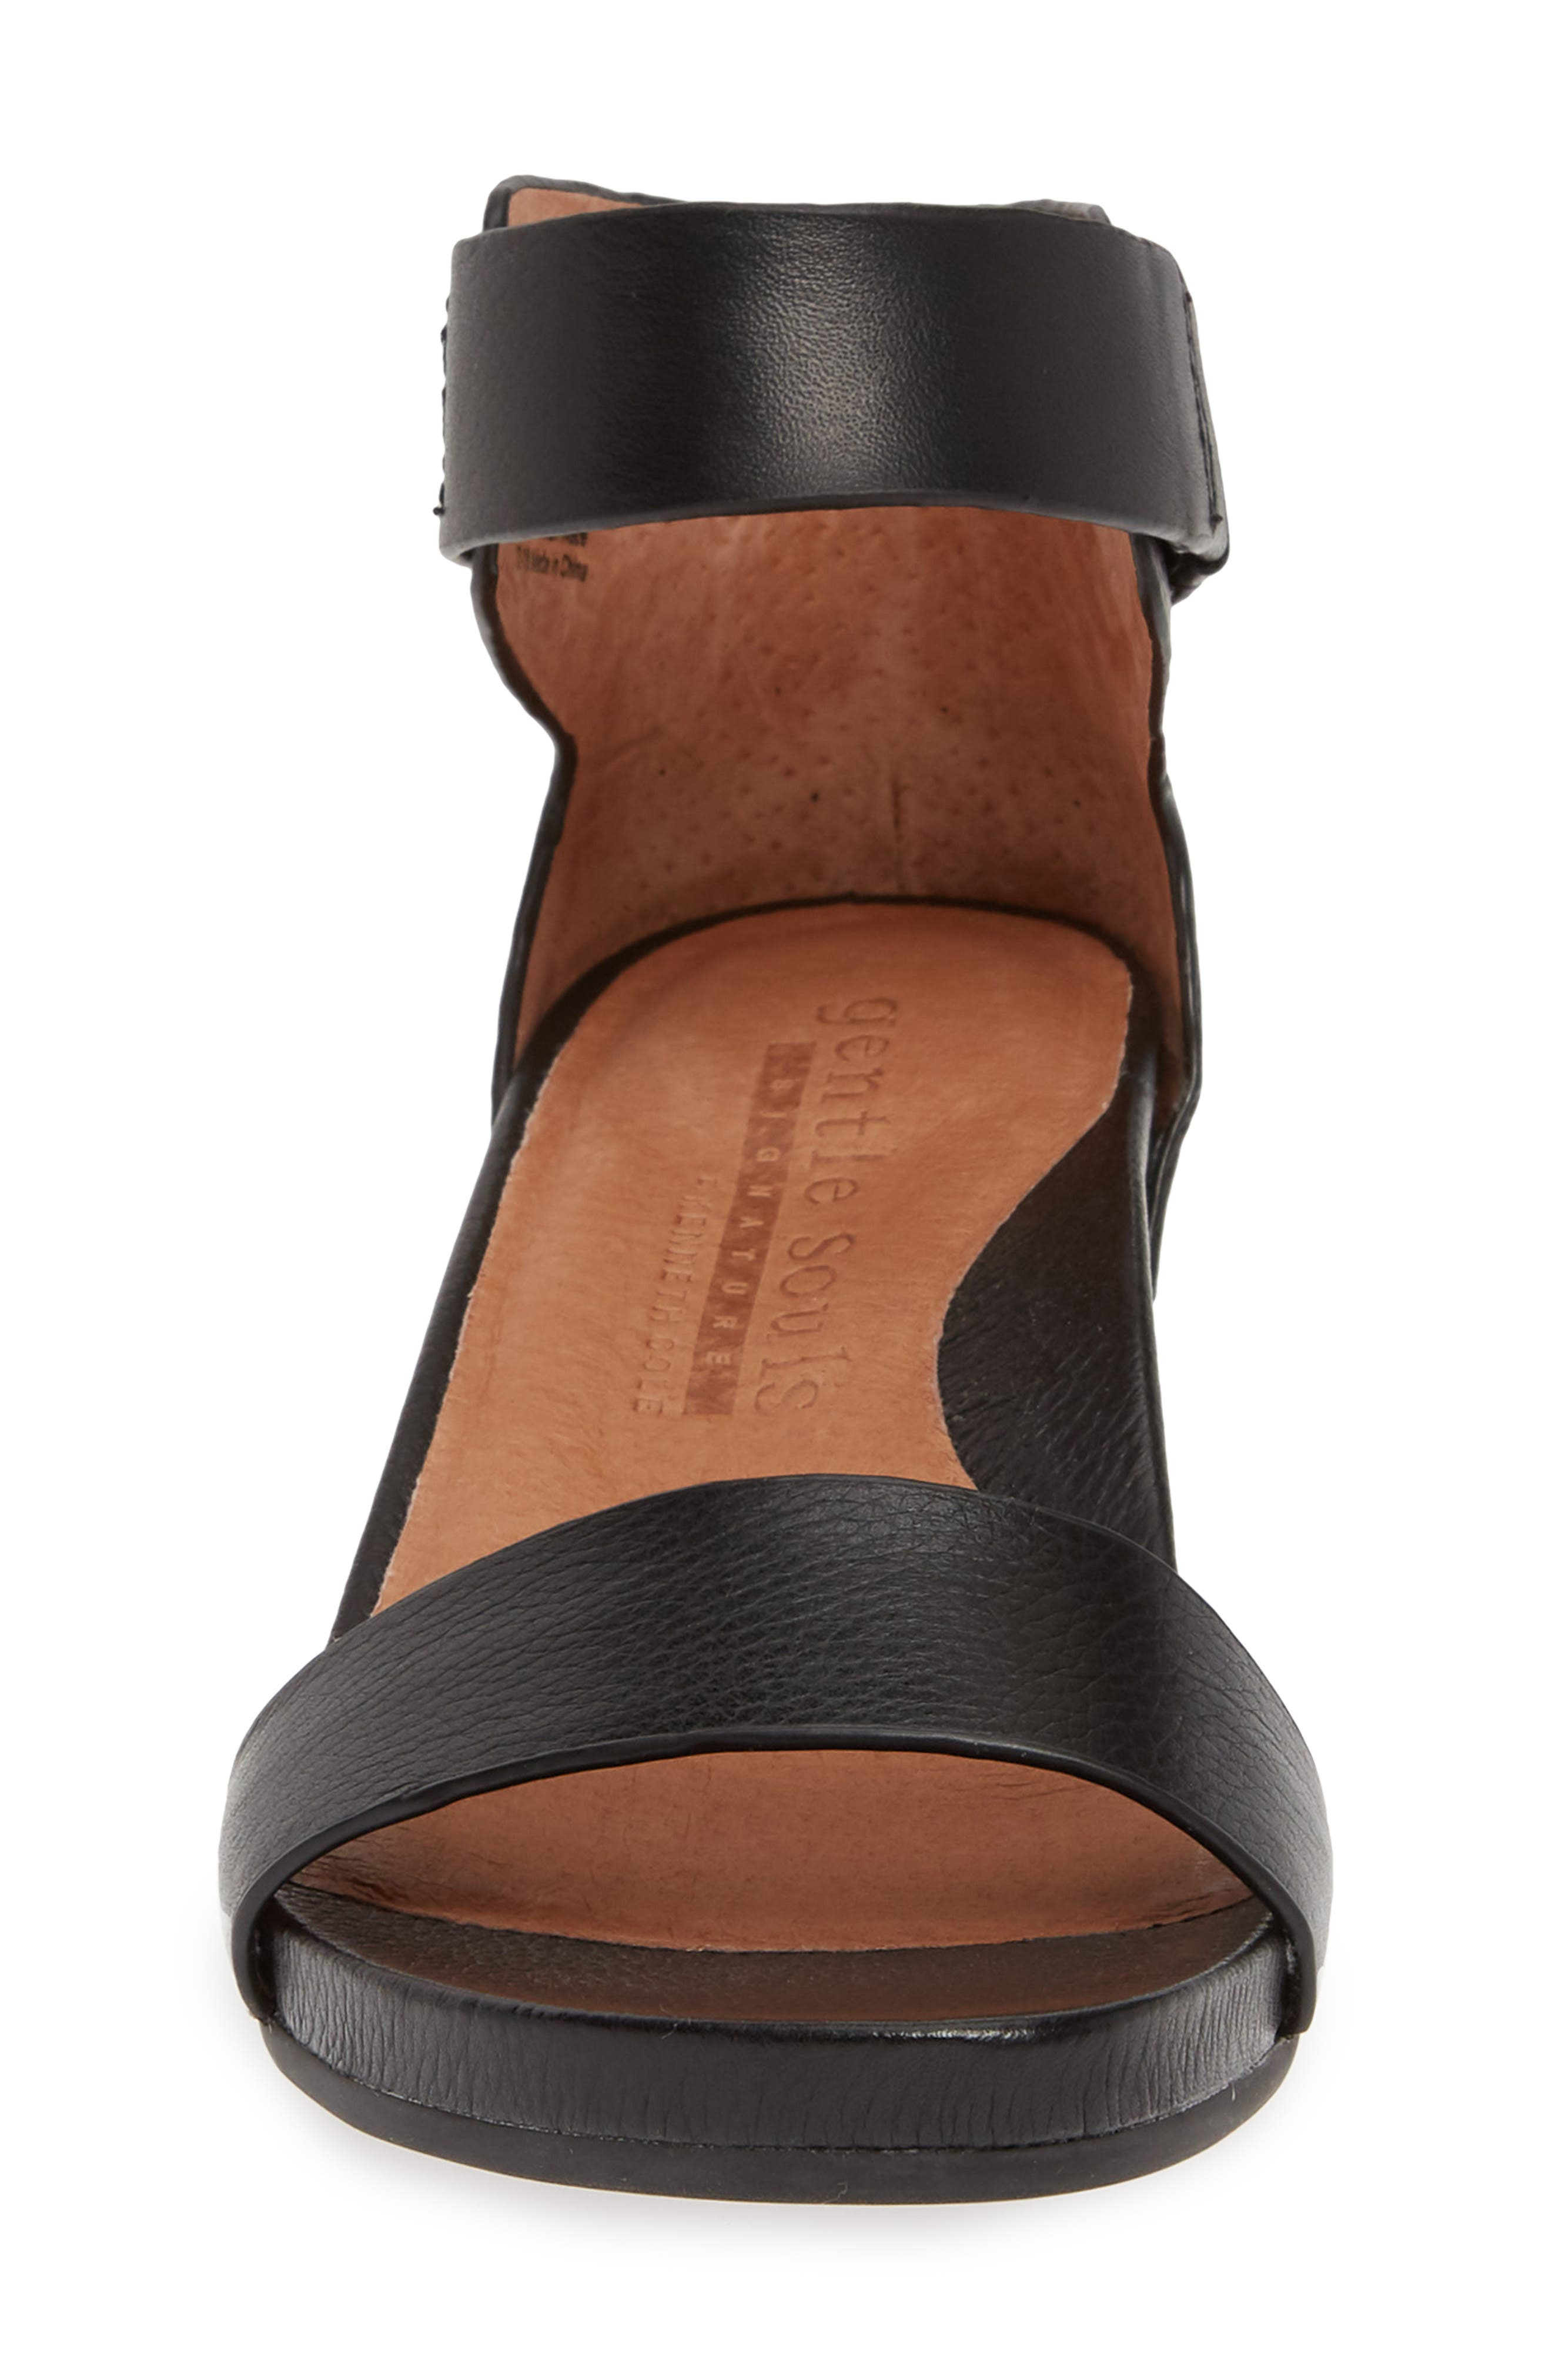 GENTLE SOULS SIGNATURE, Gianna Wedge Sandal, Alternate thumbnail 4, color, BLACK LEATHER